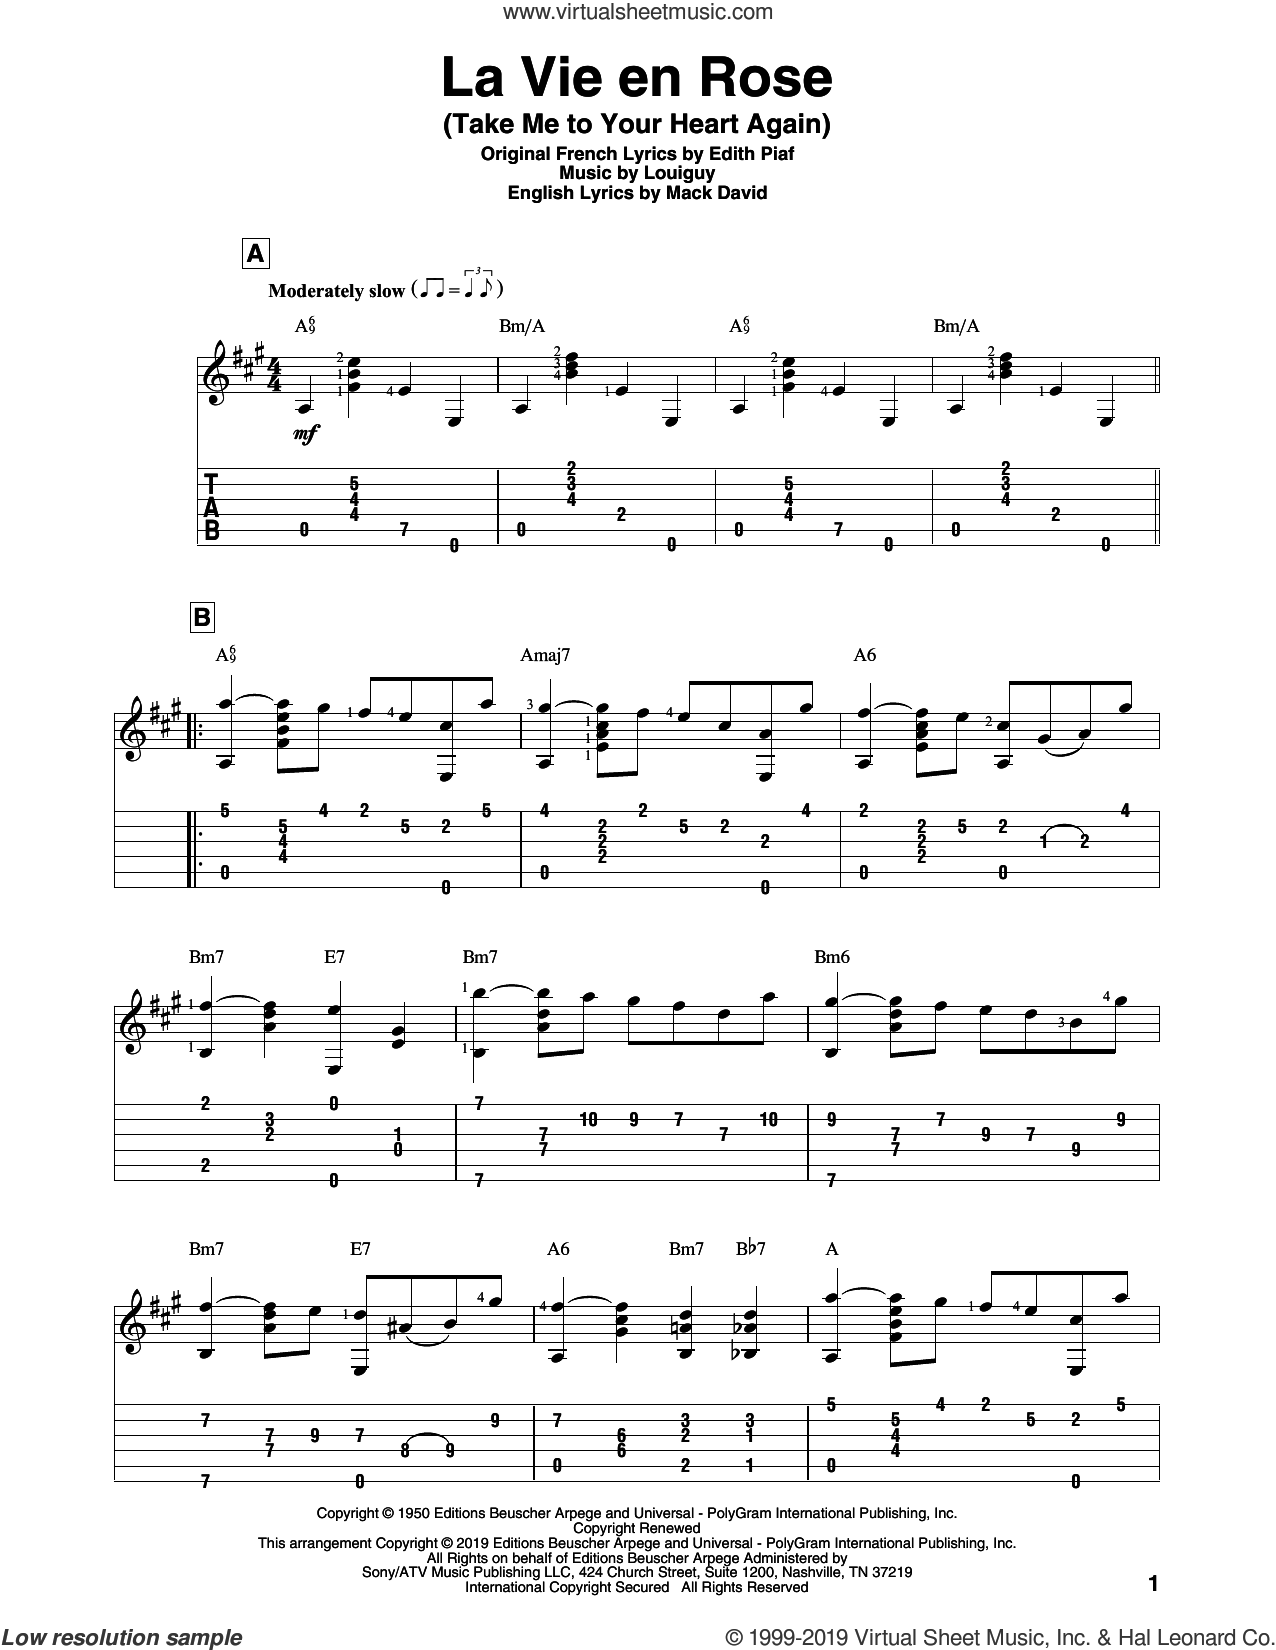 La Vie En Rose (Take Me To Your Heart Again) sheet music for guitar solo by Edith Piaf, Mack David and Marcel Louiguy, intermediate skill level